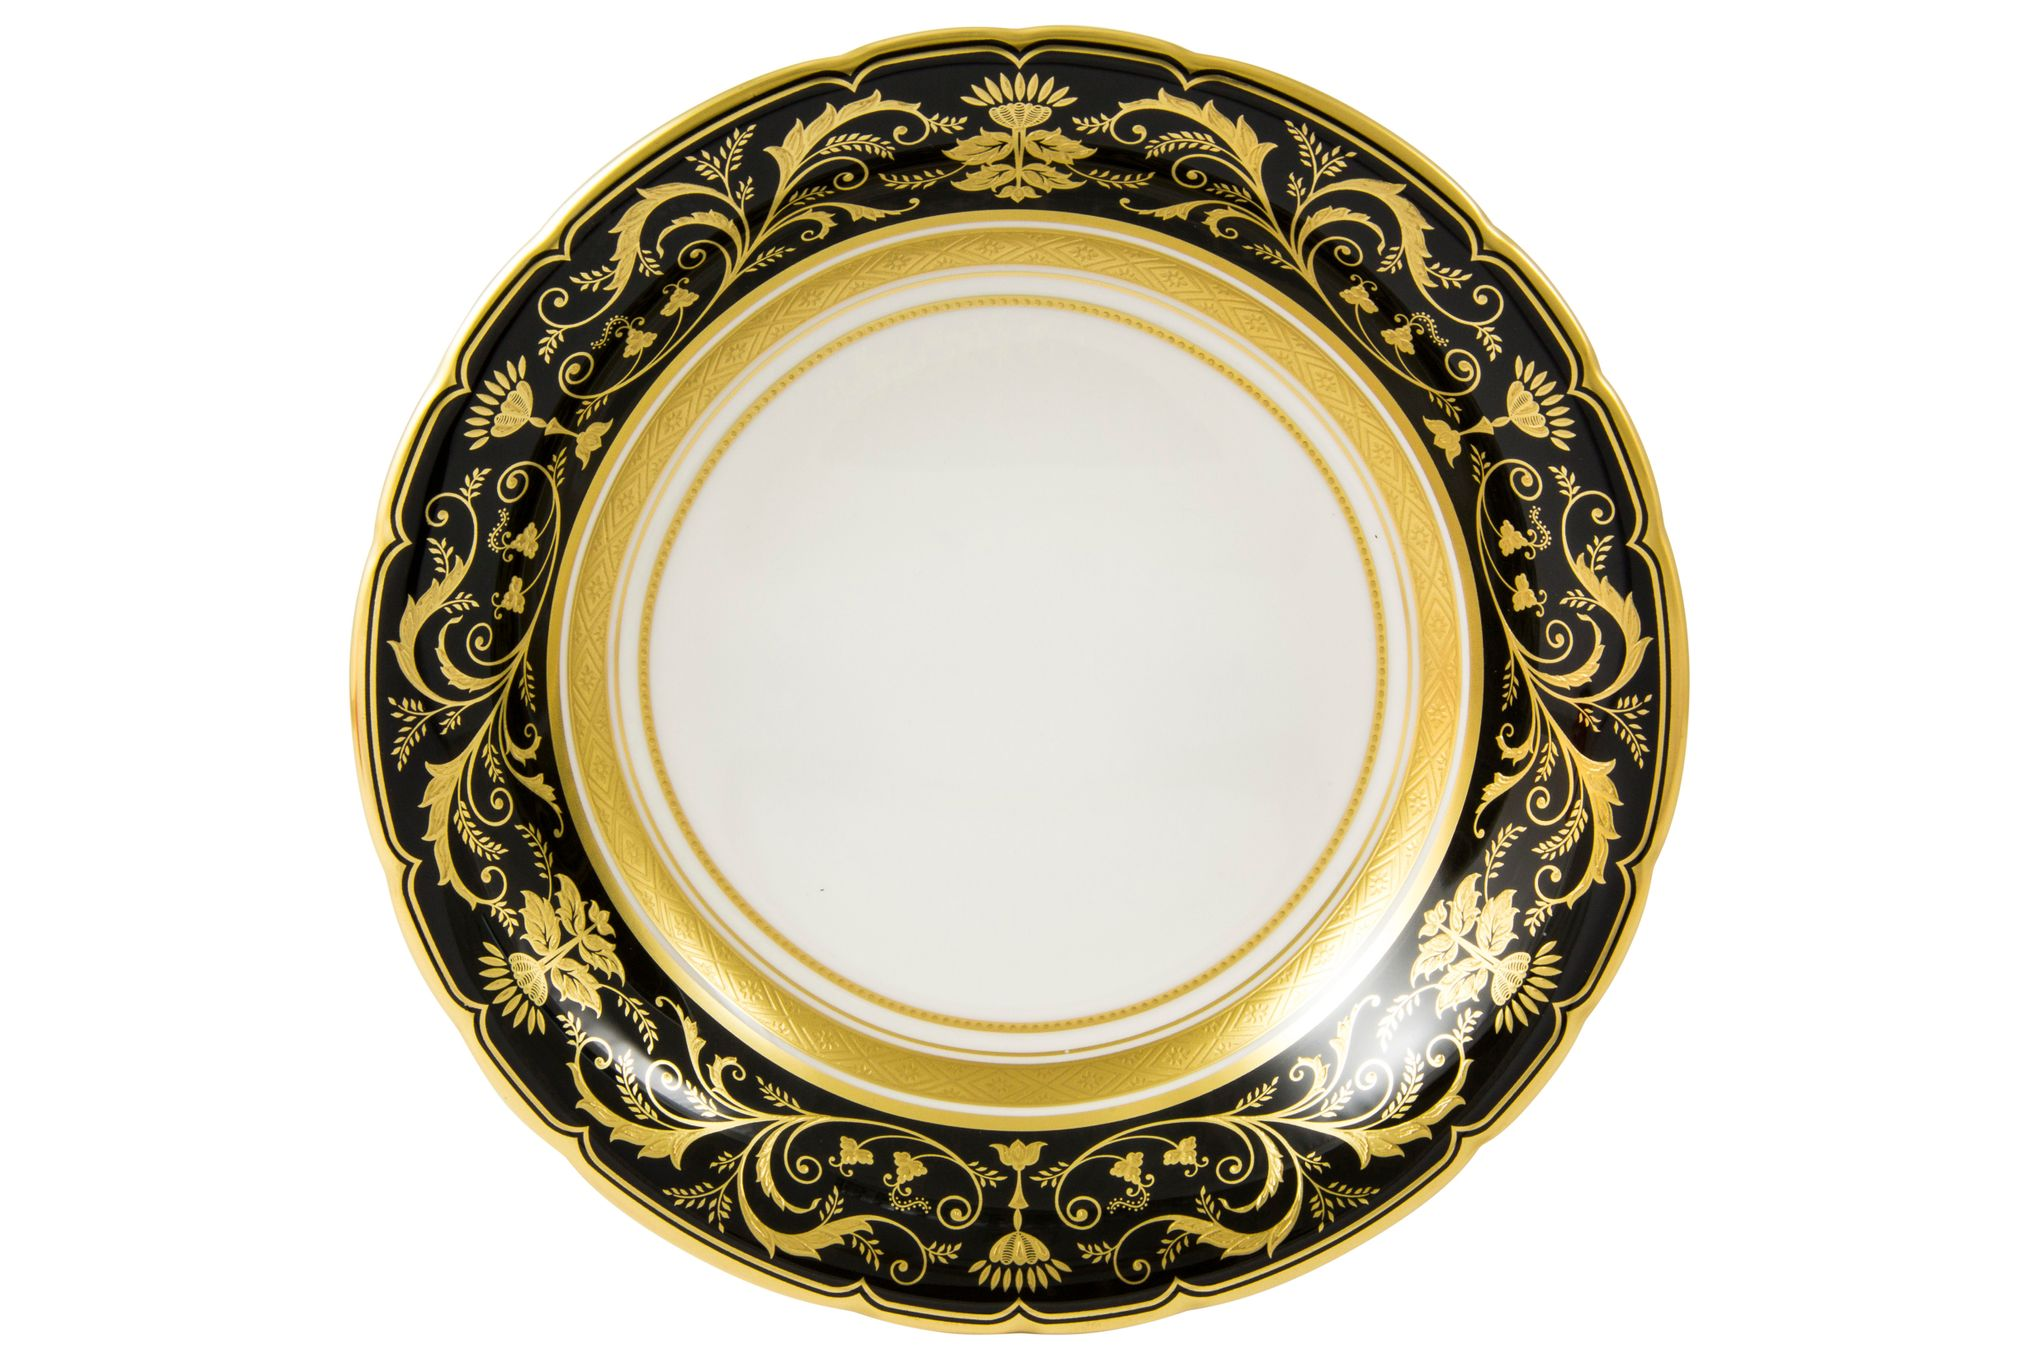 Royal Crown Derby Regency - Black Cereal Bowl 16.5cm thumb 2